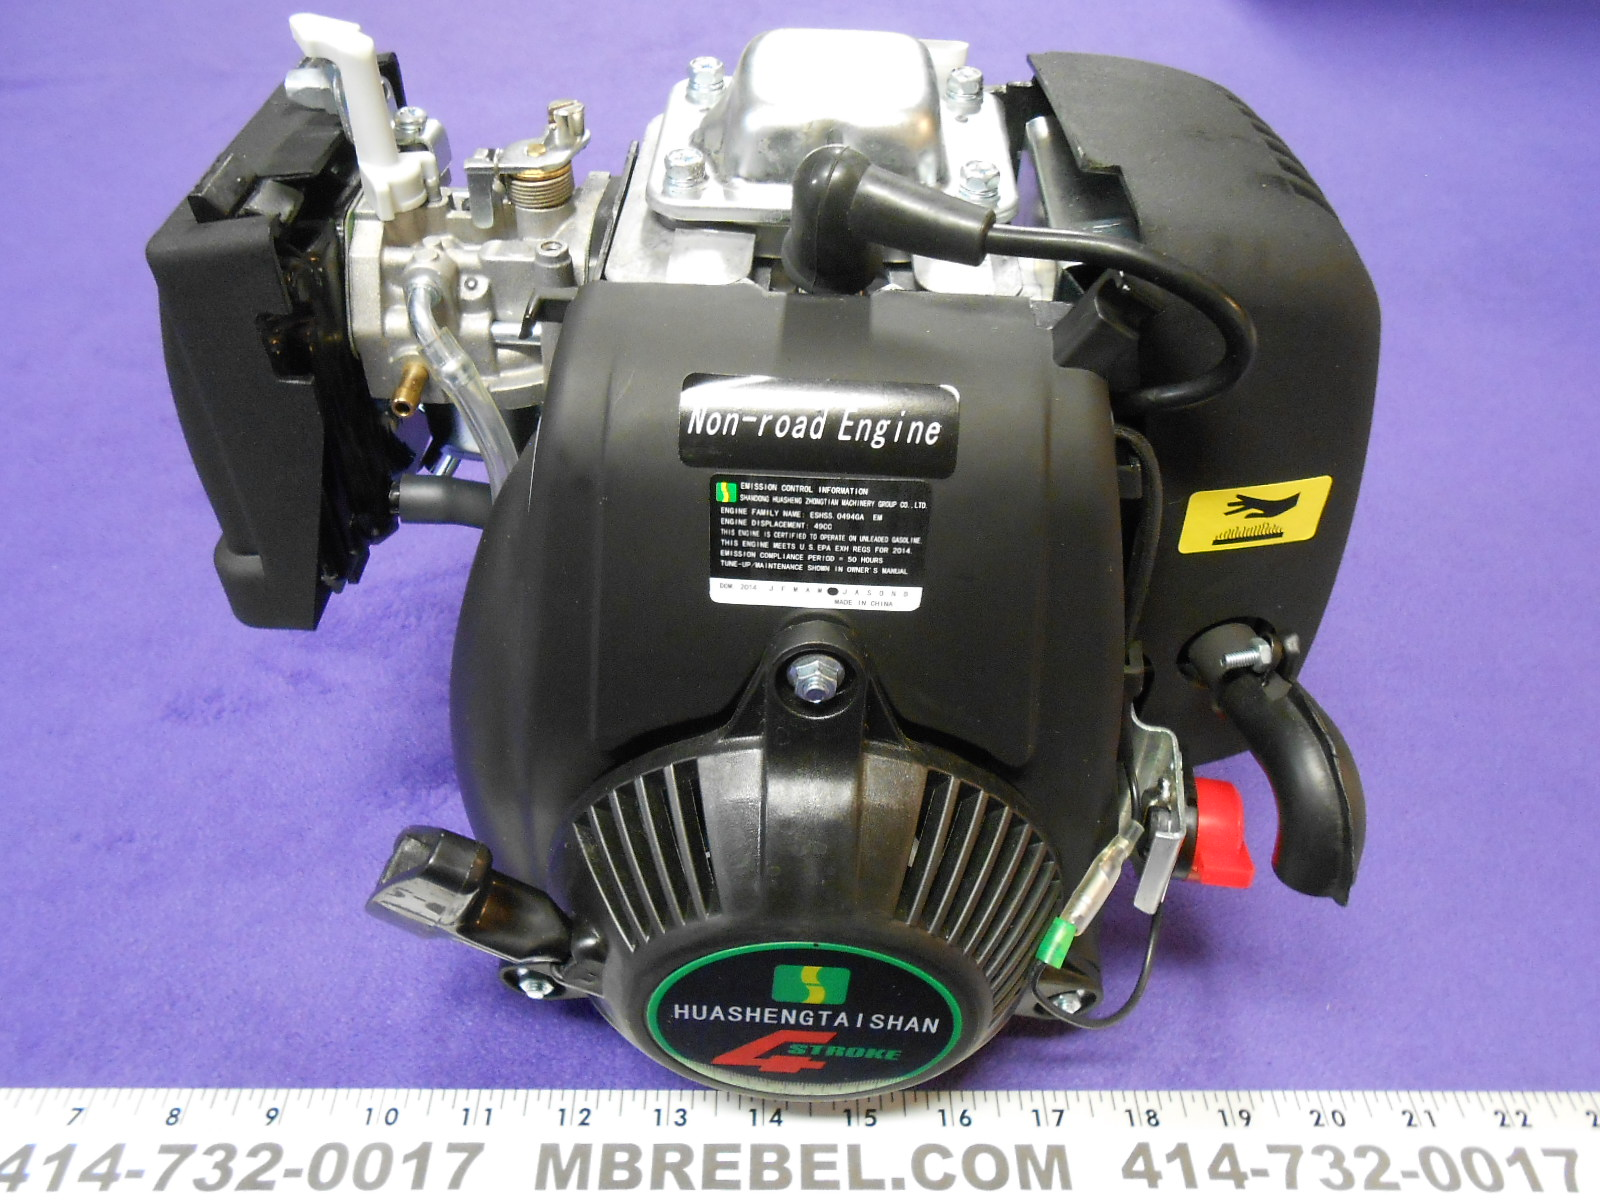 8 stroke engine The term six-stroke engine has been applied to a number of alternative internal  combustion  the inventor claims this engine is 23 per cent more fuel efficient  compared to a standard four-stroke engine and that it is very low on pollution.